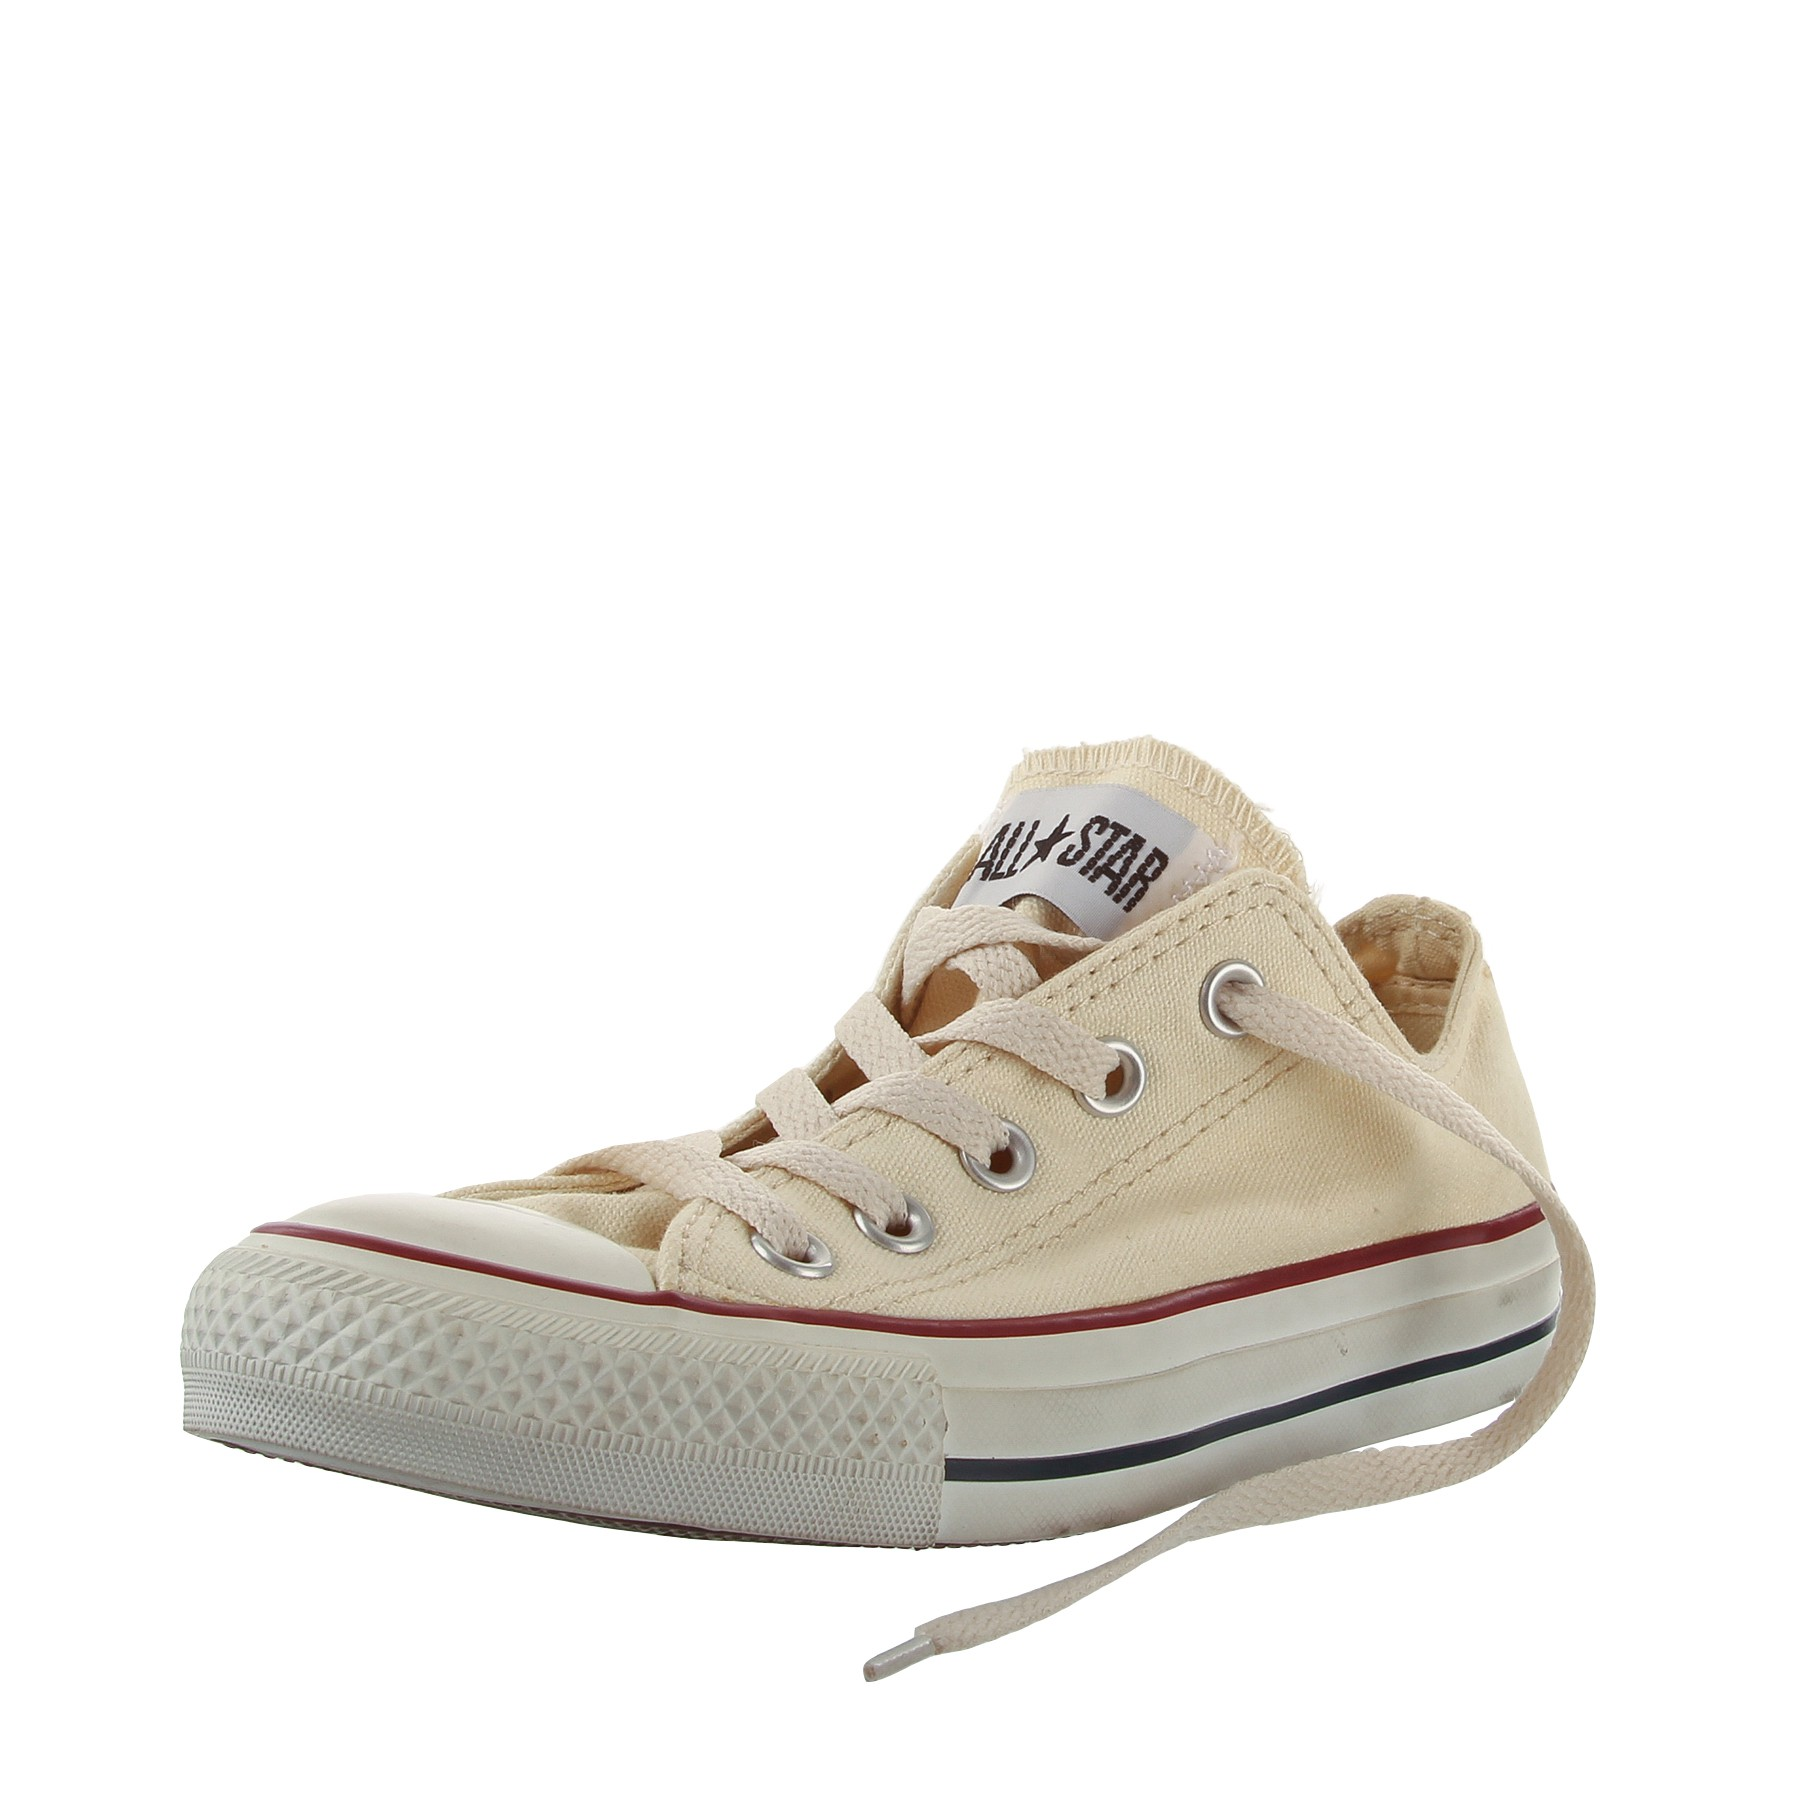 M9165 CT CHUCK TAYLOR AS CORE/ WHITE Bild https://cdn03.plentymarkets.com/zsy4vjx32p87/item/images/4263/full/M9165-ama-01.JPG